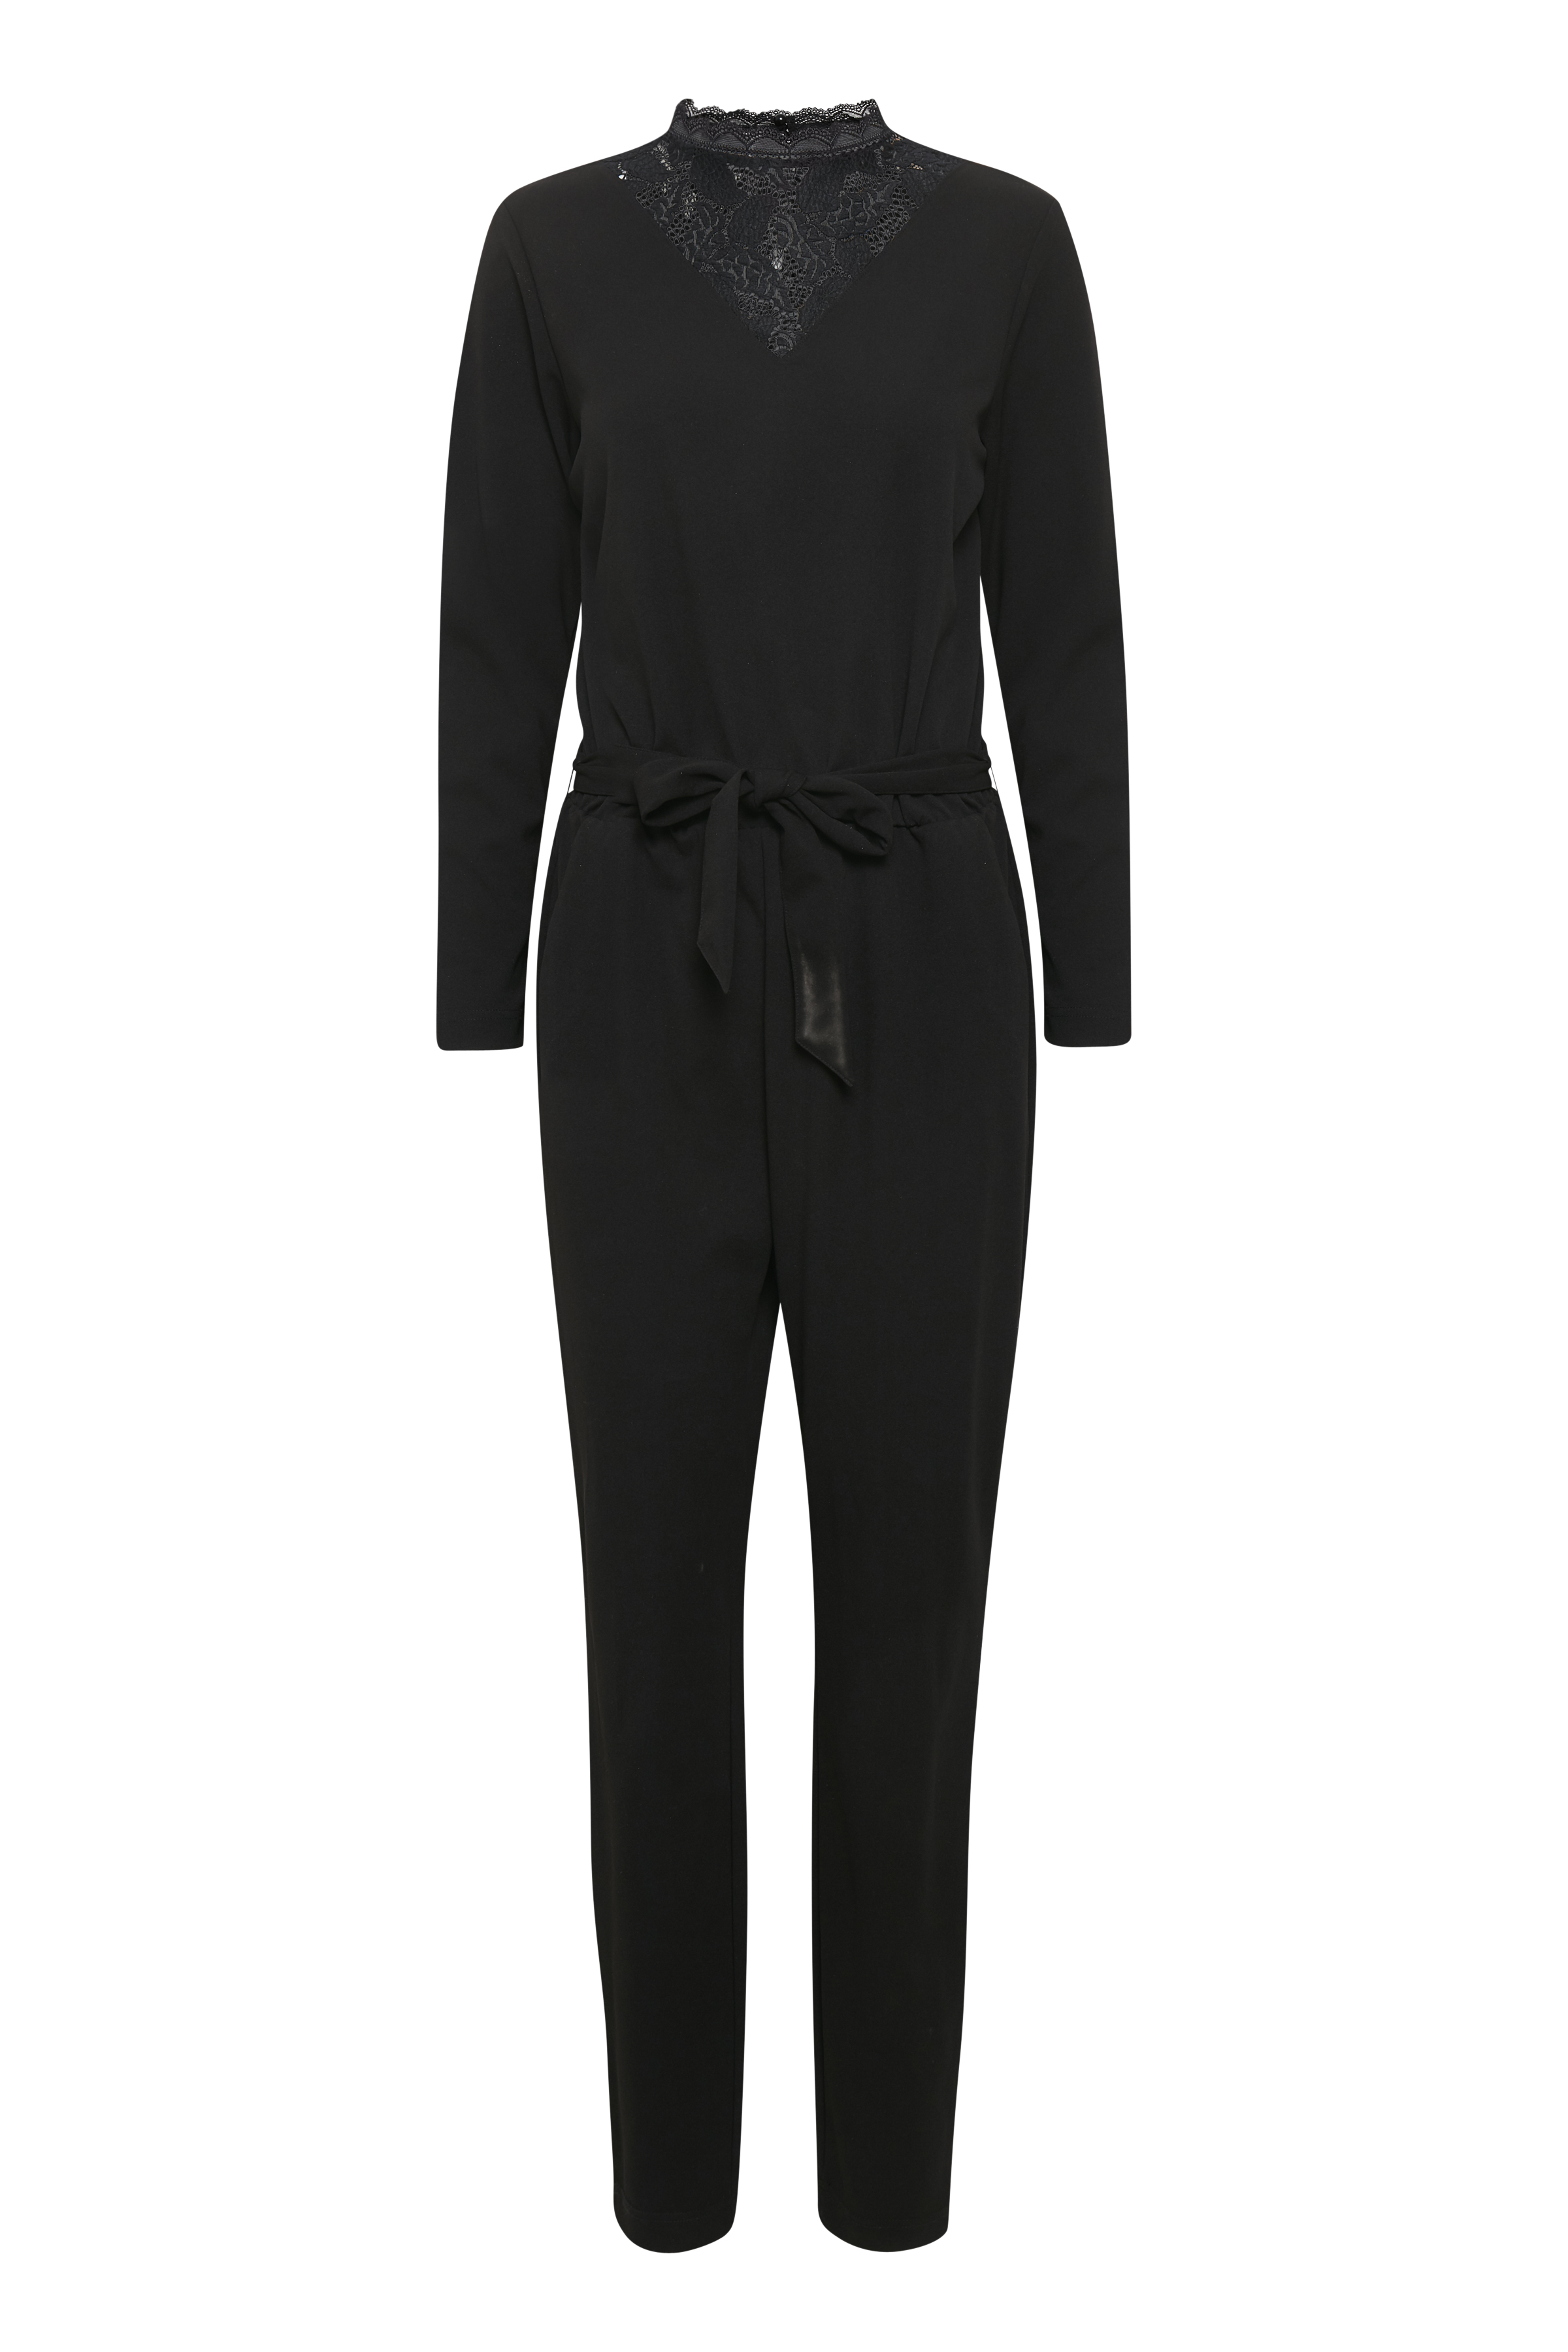 Image of b.young Dame Jumpsuit - Sort